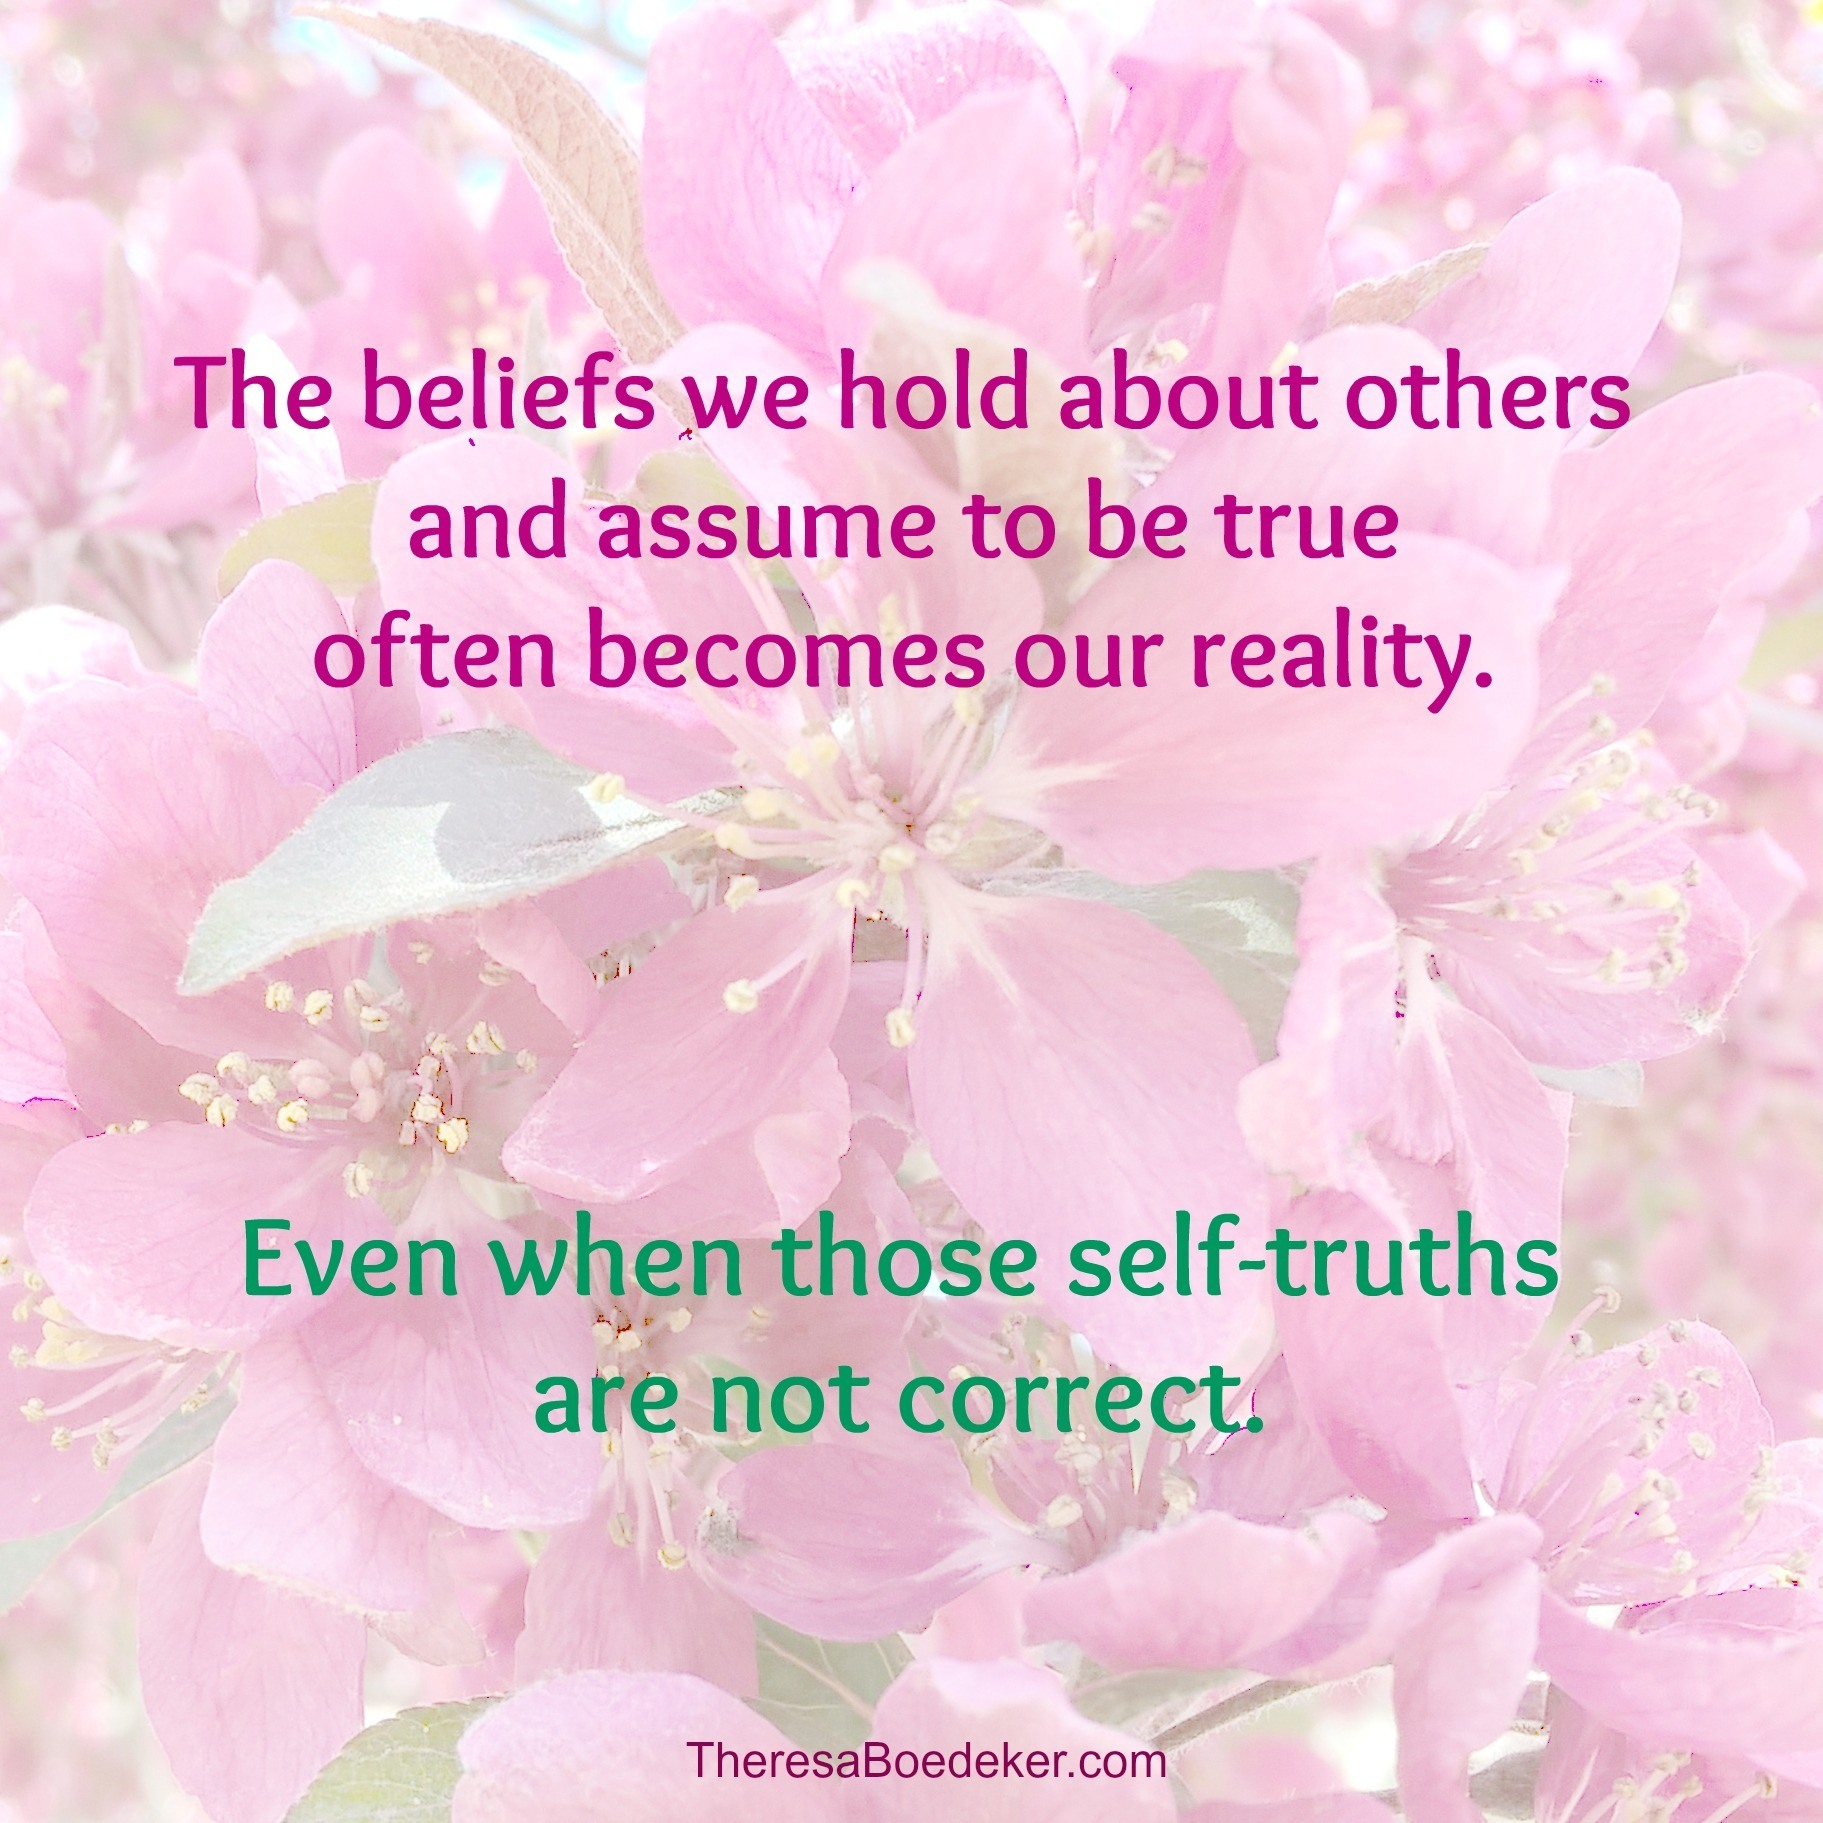 The beliefs we hold about others and assume to be true often becomes our reality. They shape our life. But are those perceptions and belief systems correct? And how do those views affect us? Find out.